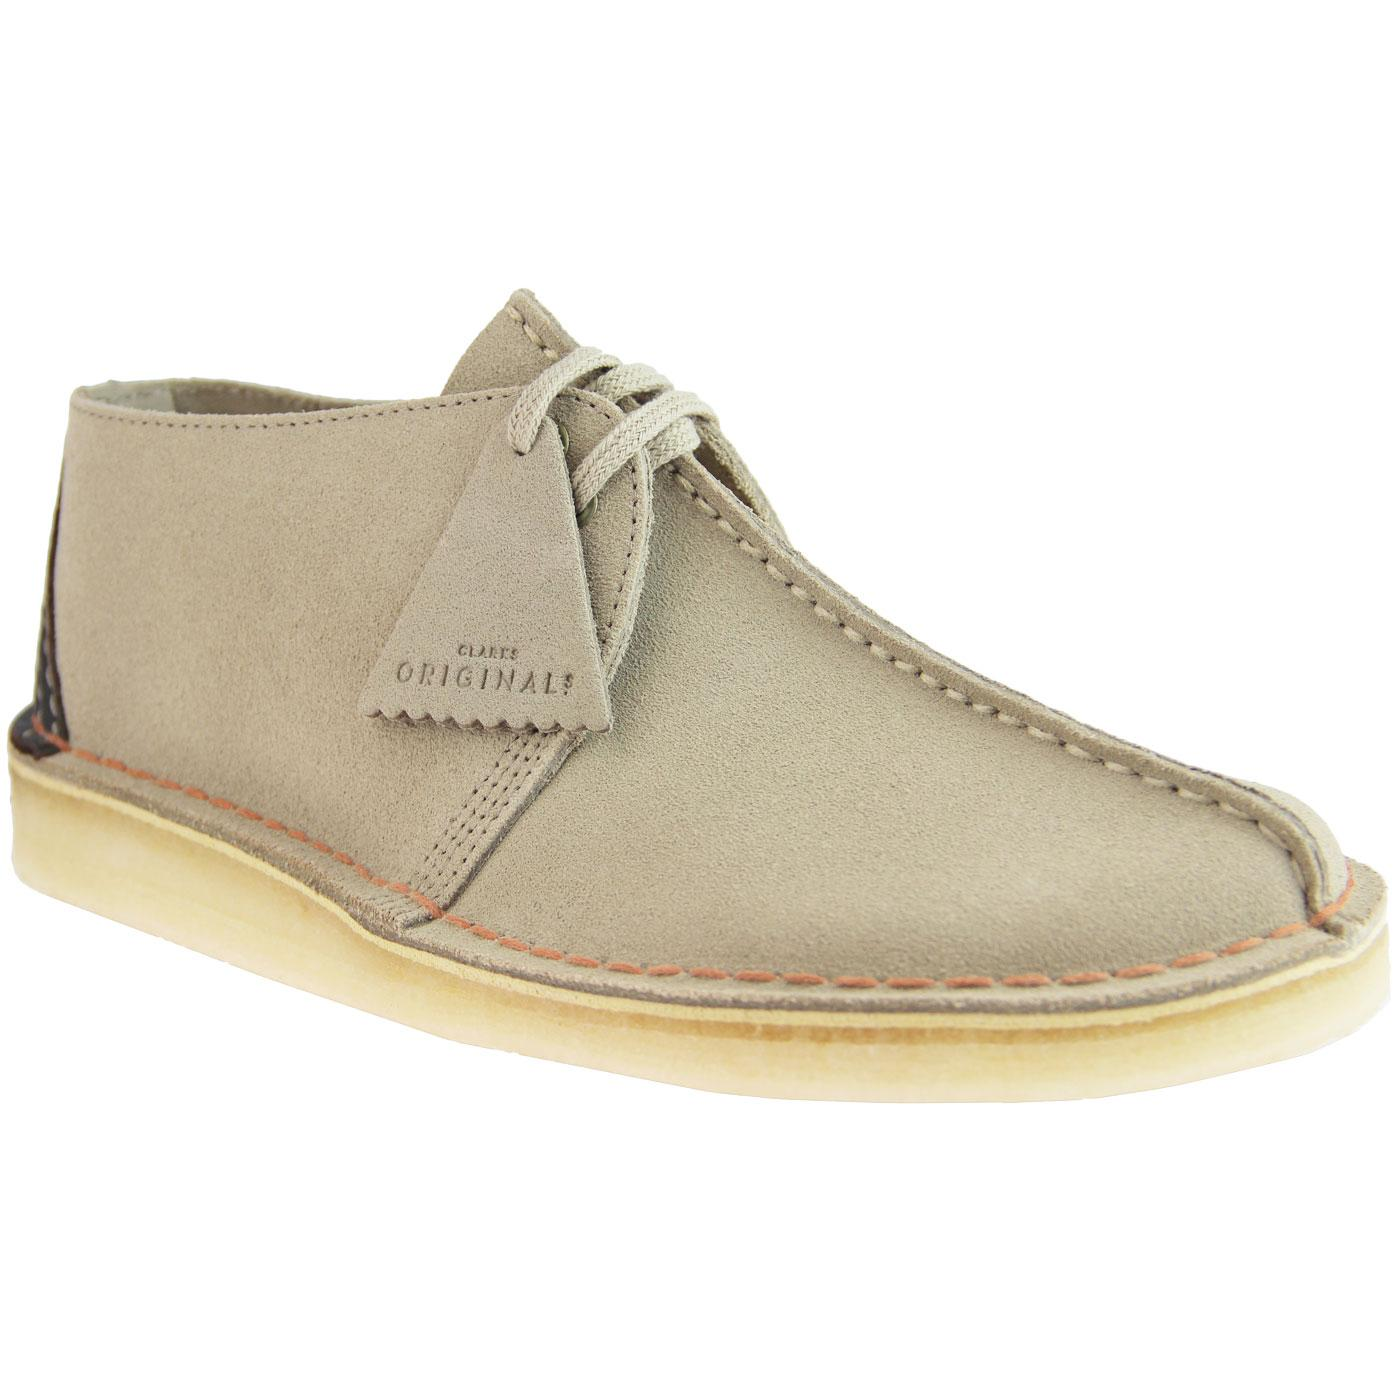 Desert Trek CLARKS ORIGINALS Mens Mod 70s Shoes S